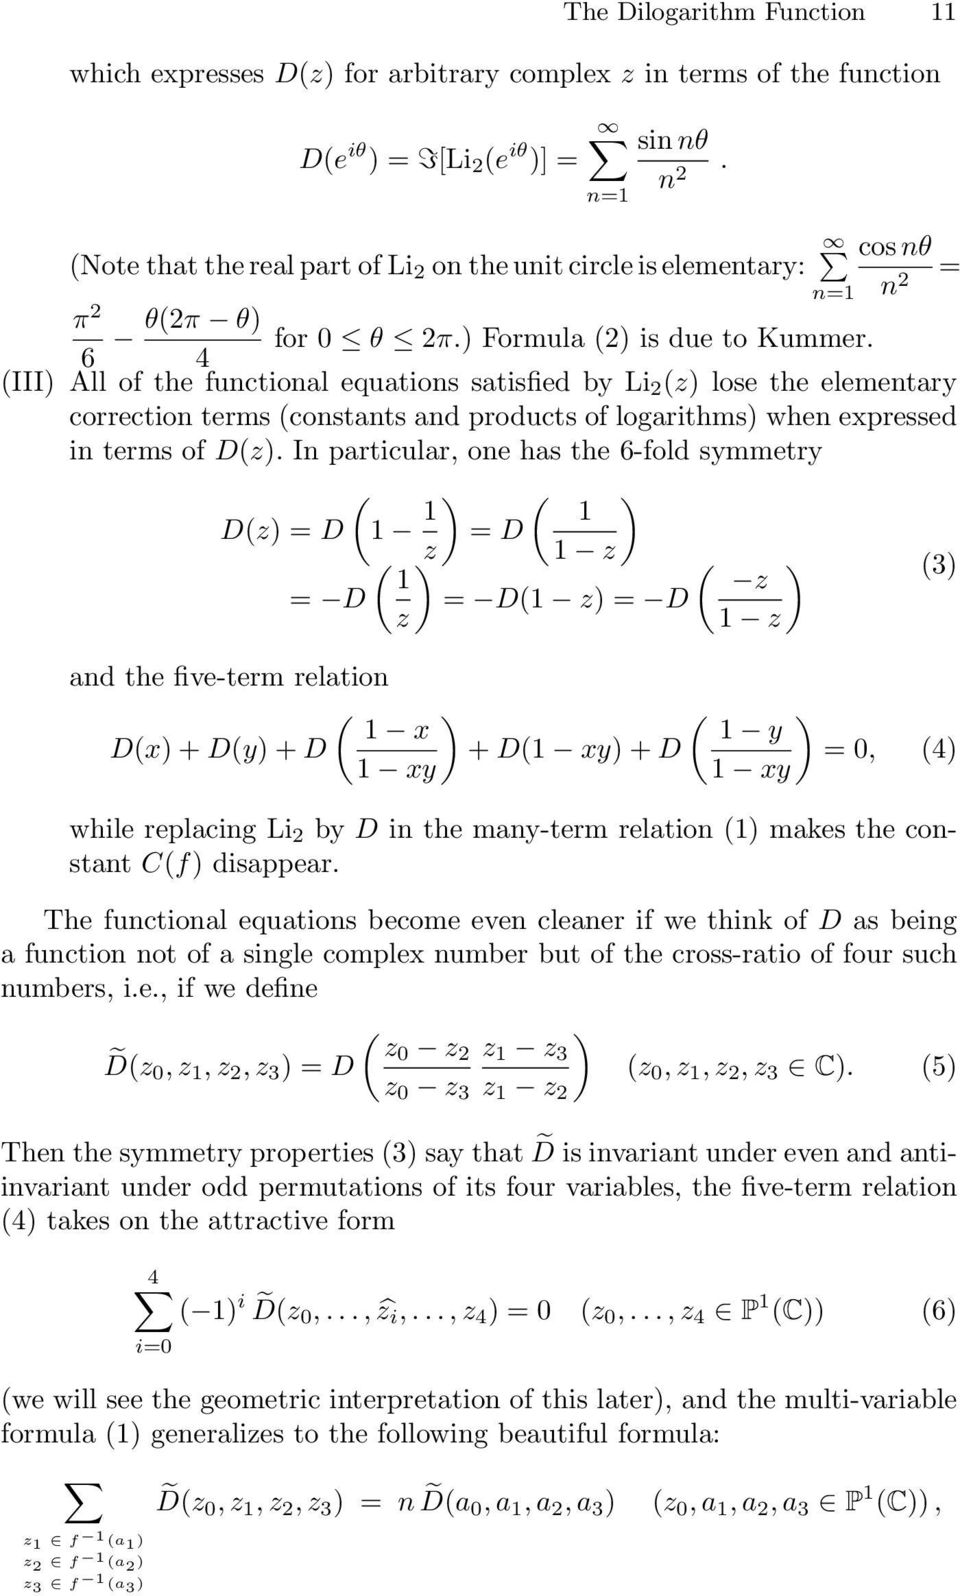 6 4 III) All of the functional equations satisfied by Li z) lose the elementary correction terms constants and products of logarithms) when expressed in terms of Dz).